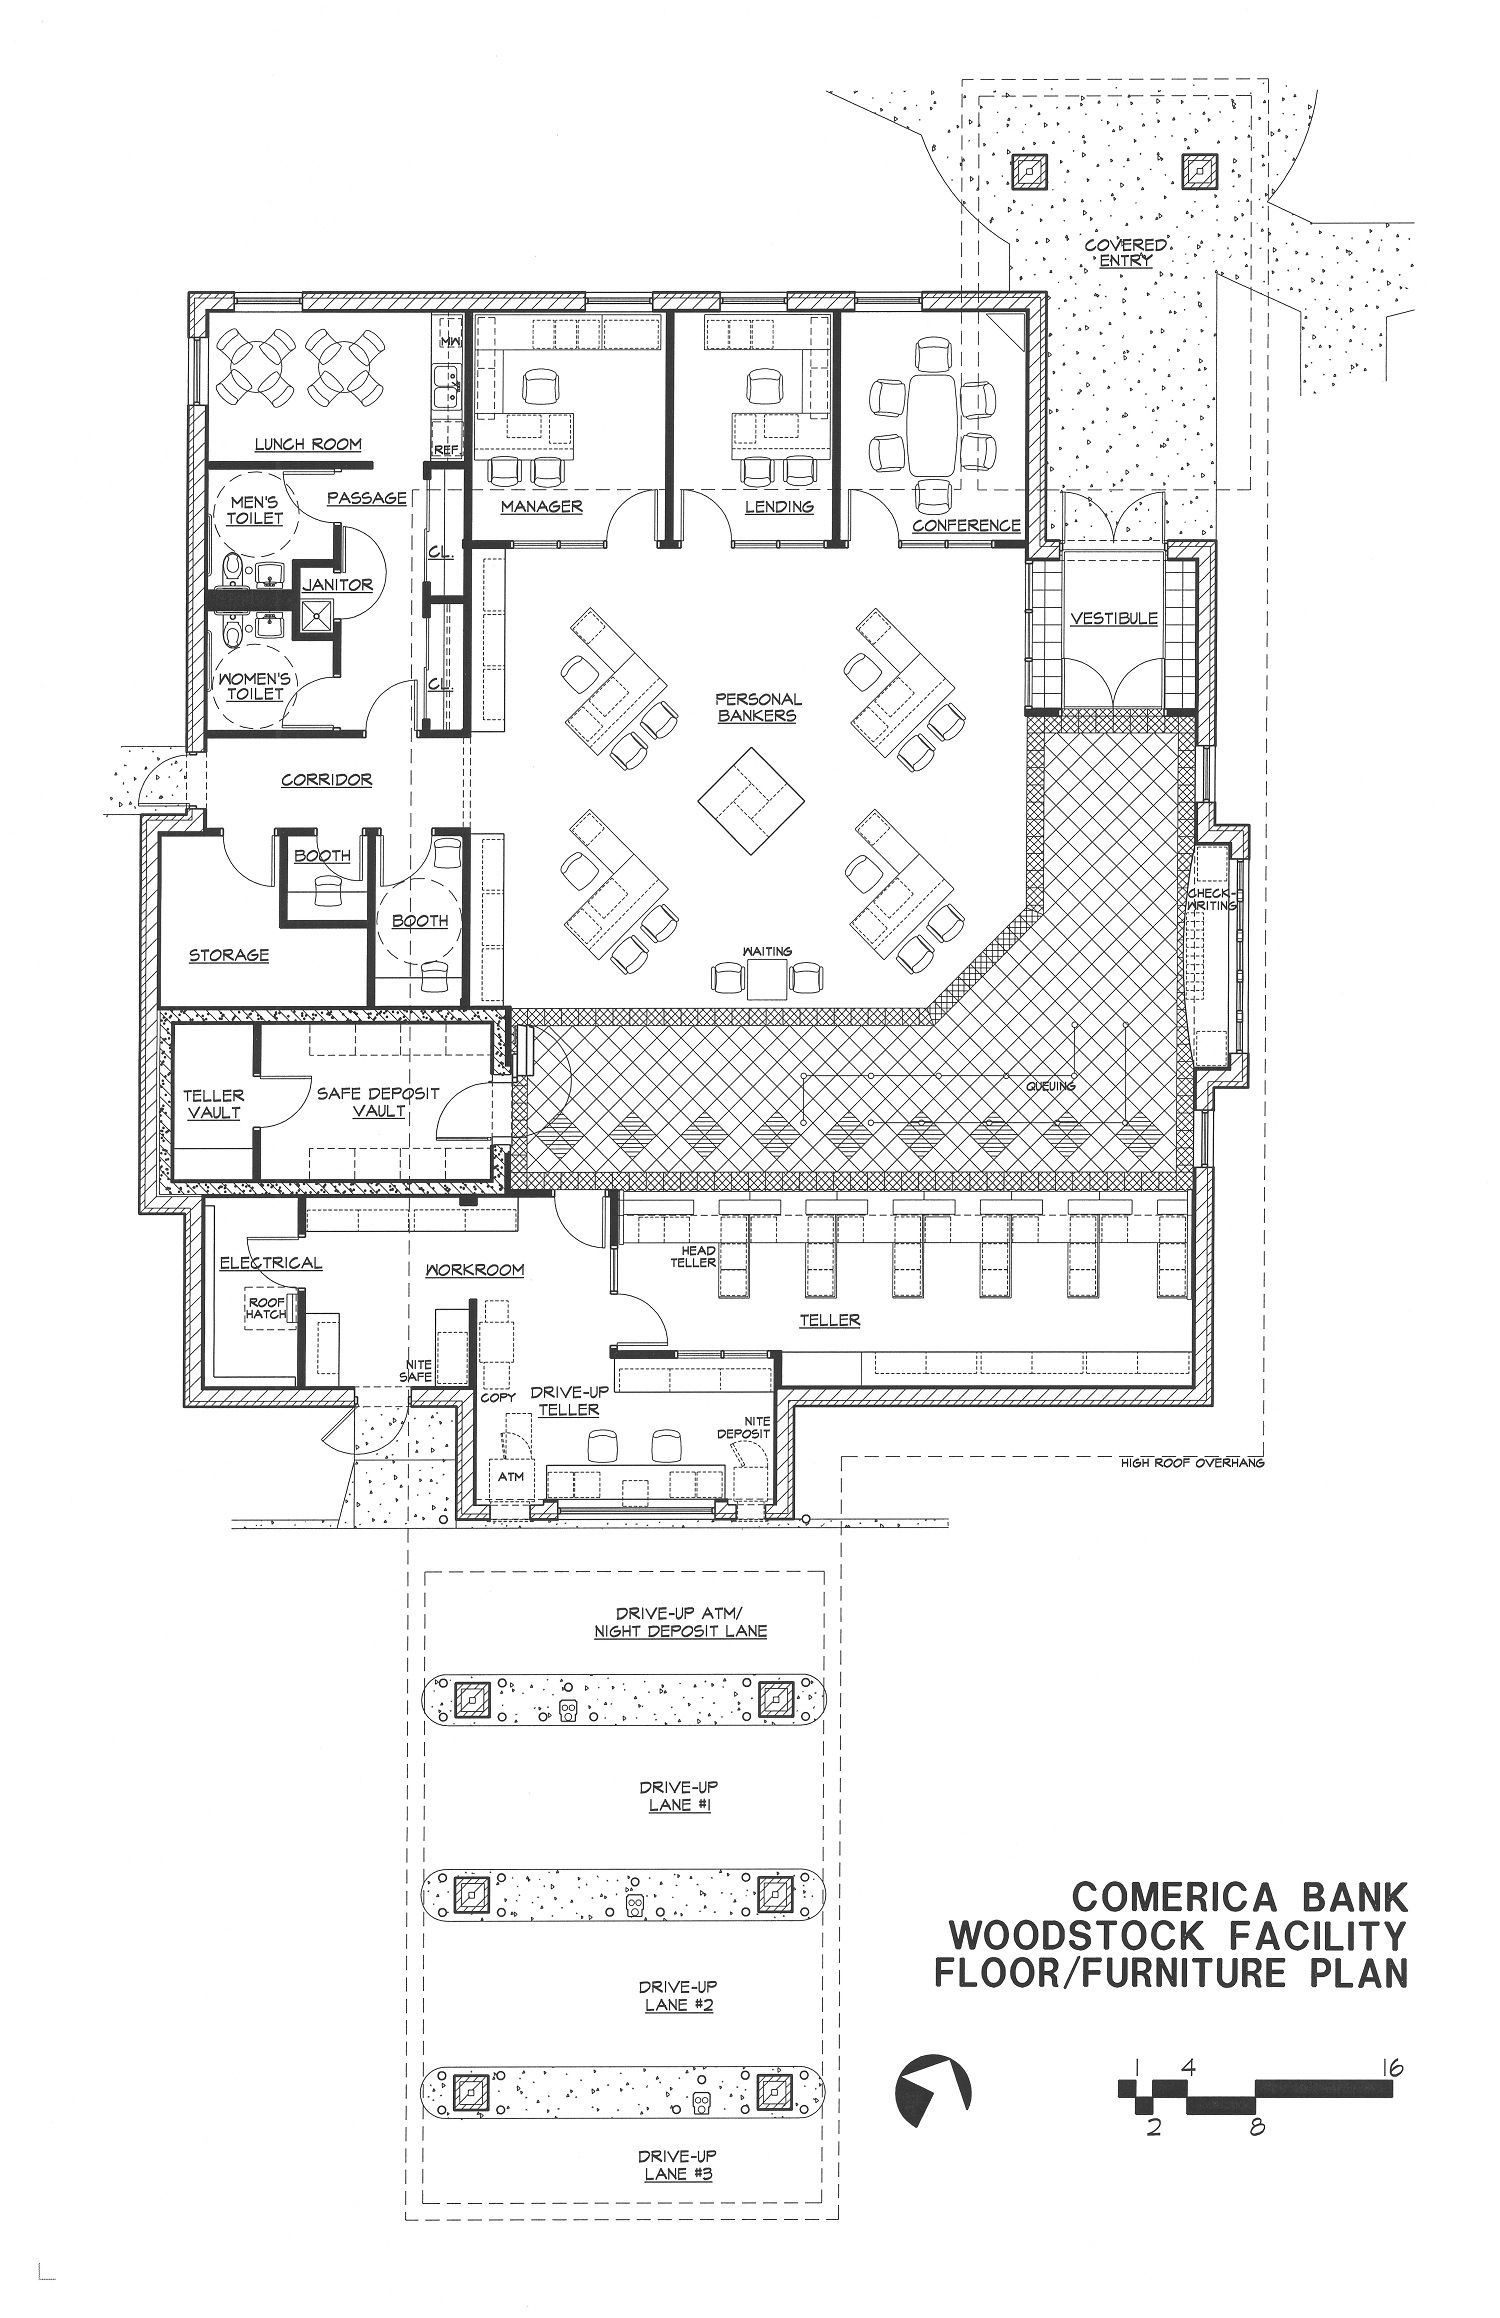 Branch Banks Woodstock Floor Plan Building Design Plan Floor Plans Floor Plan Design